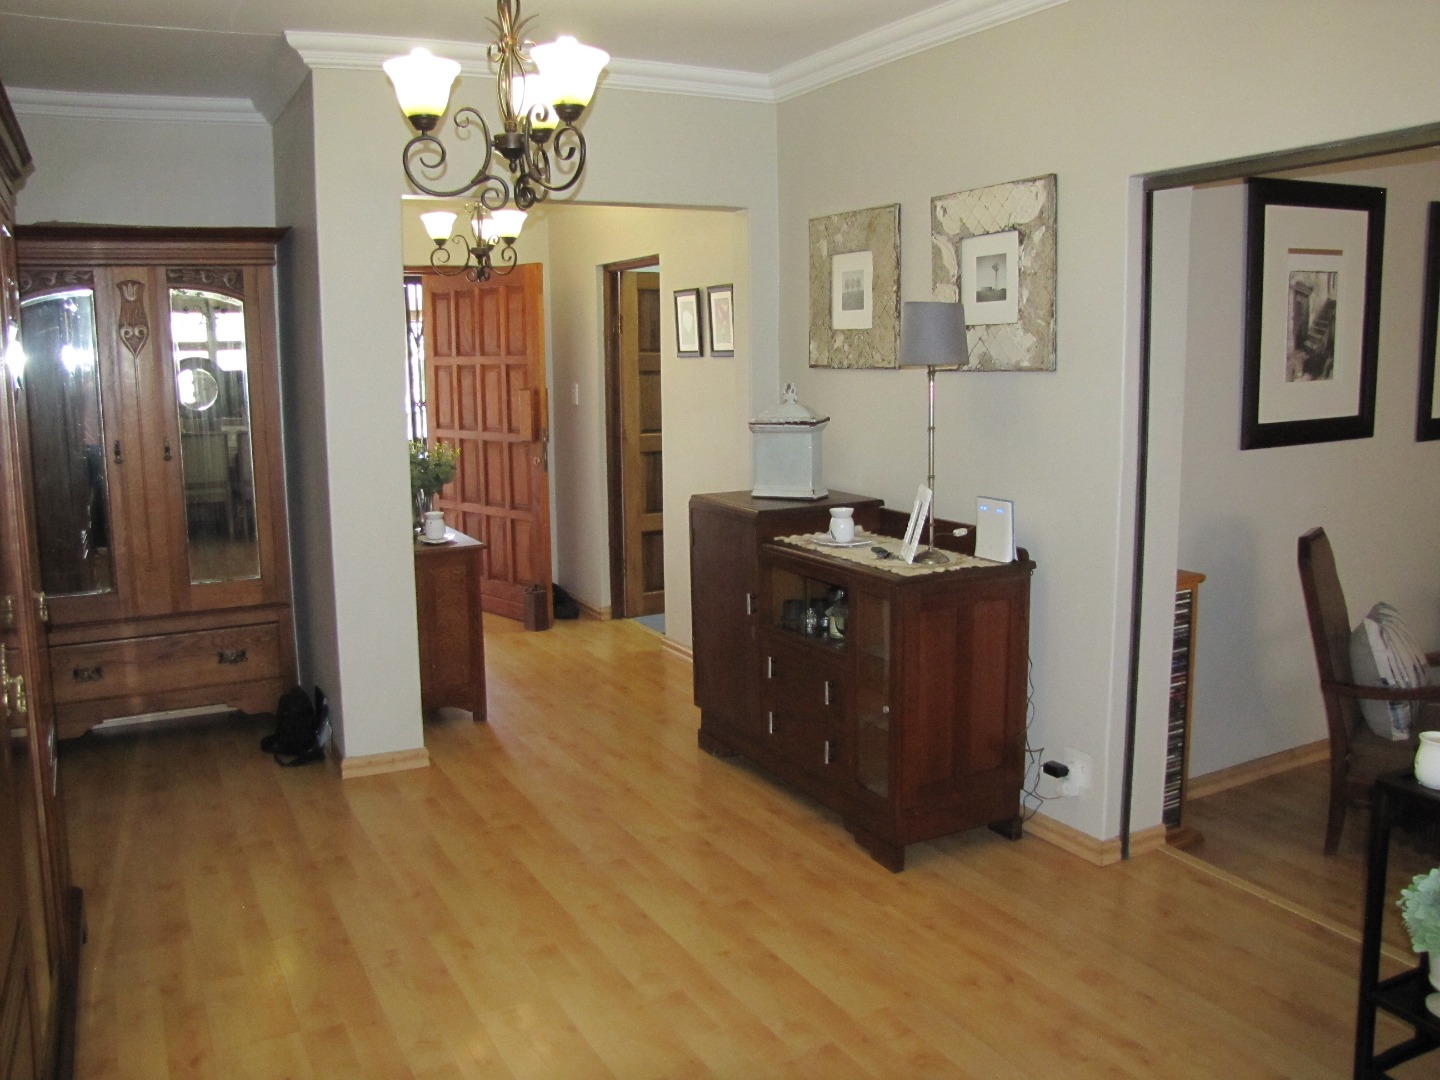 4 Bedroom House For Sale in Vanderbijlpark SW 2